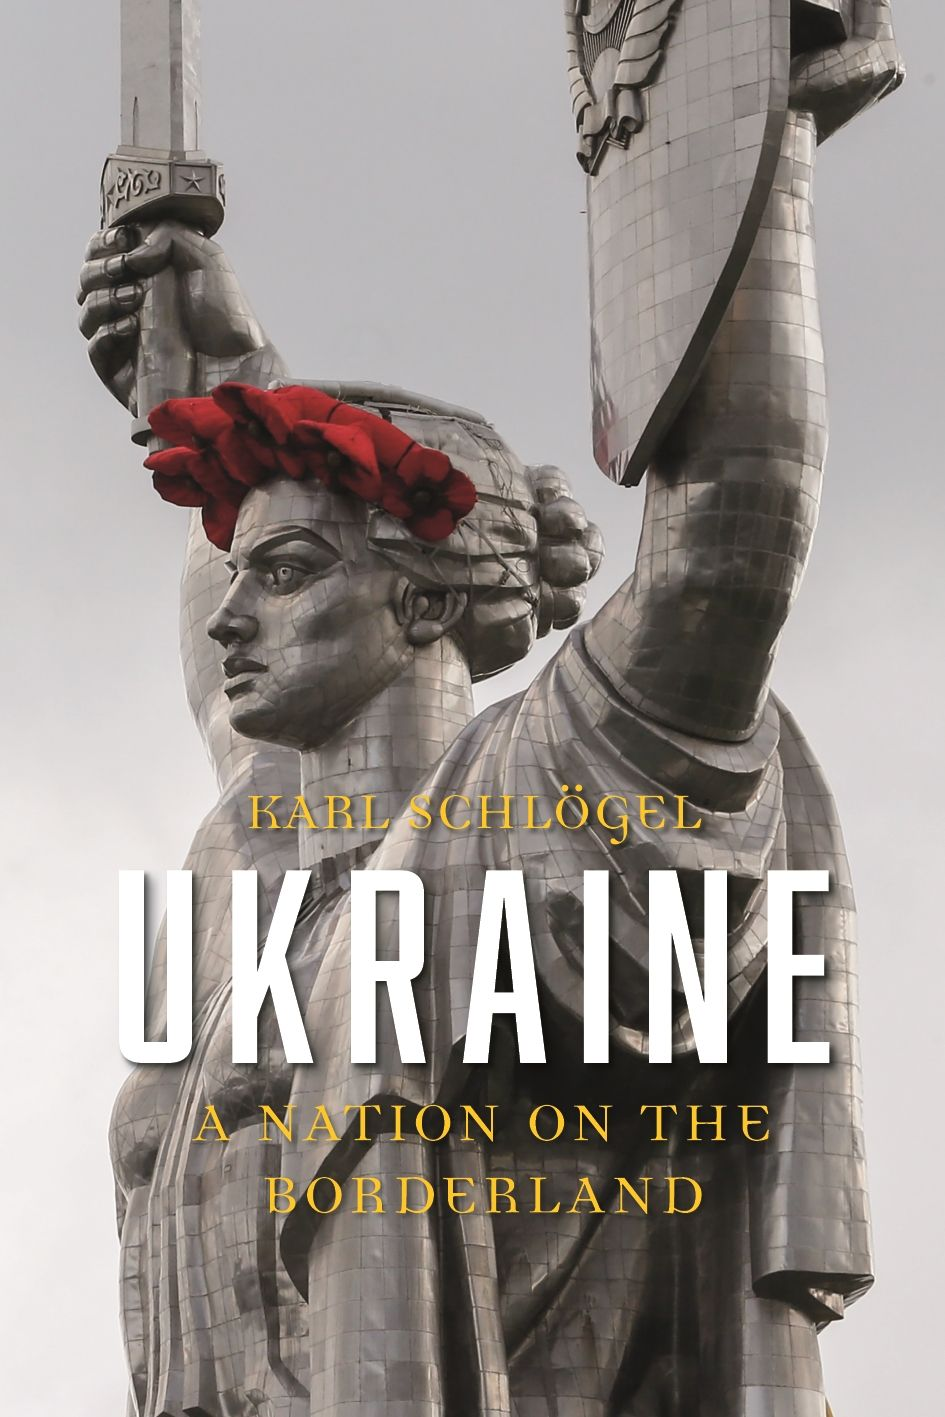 Ukraine: A Nation on the Borderland